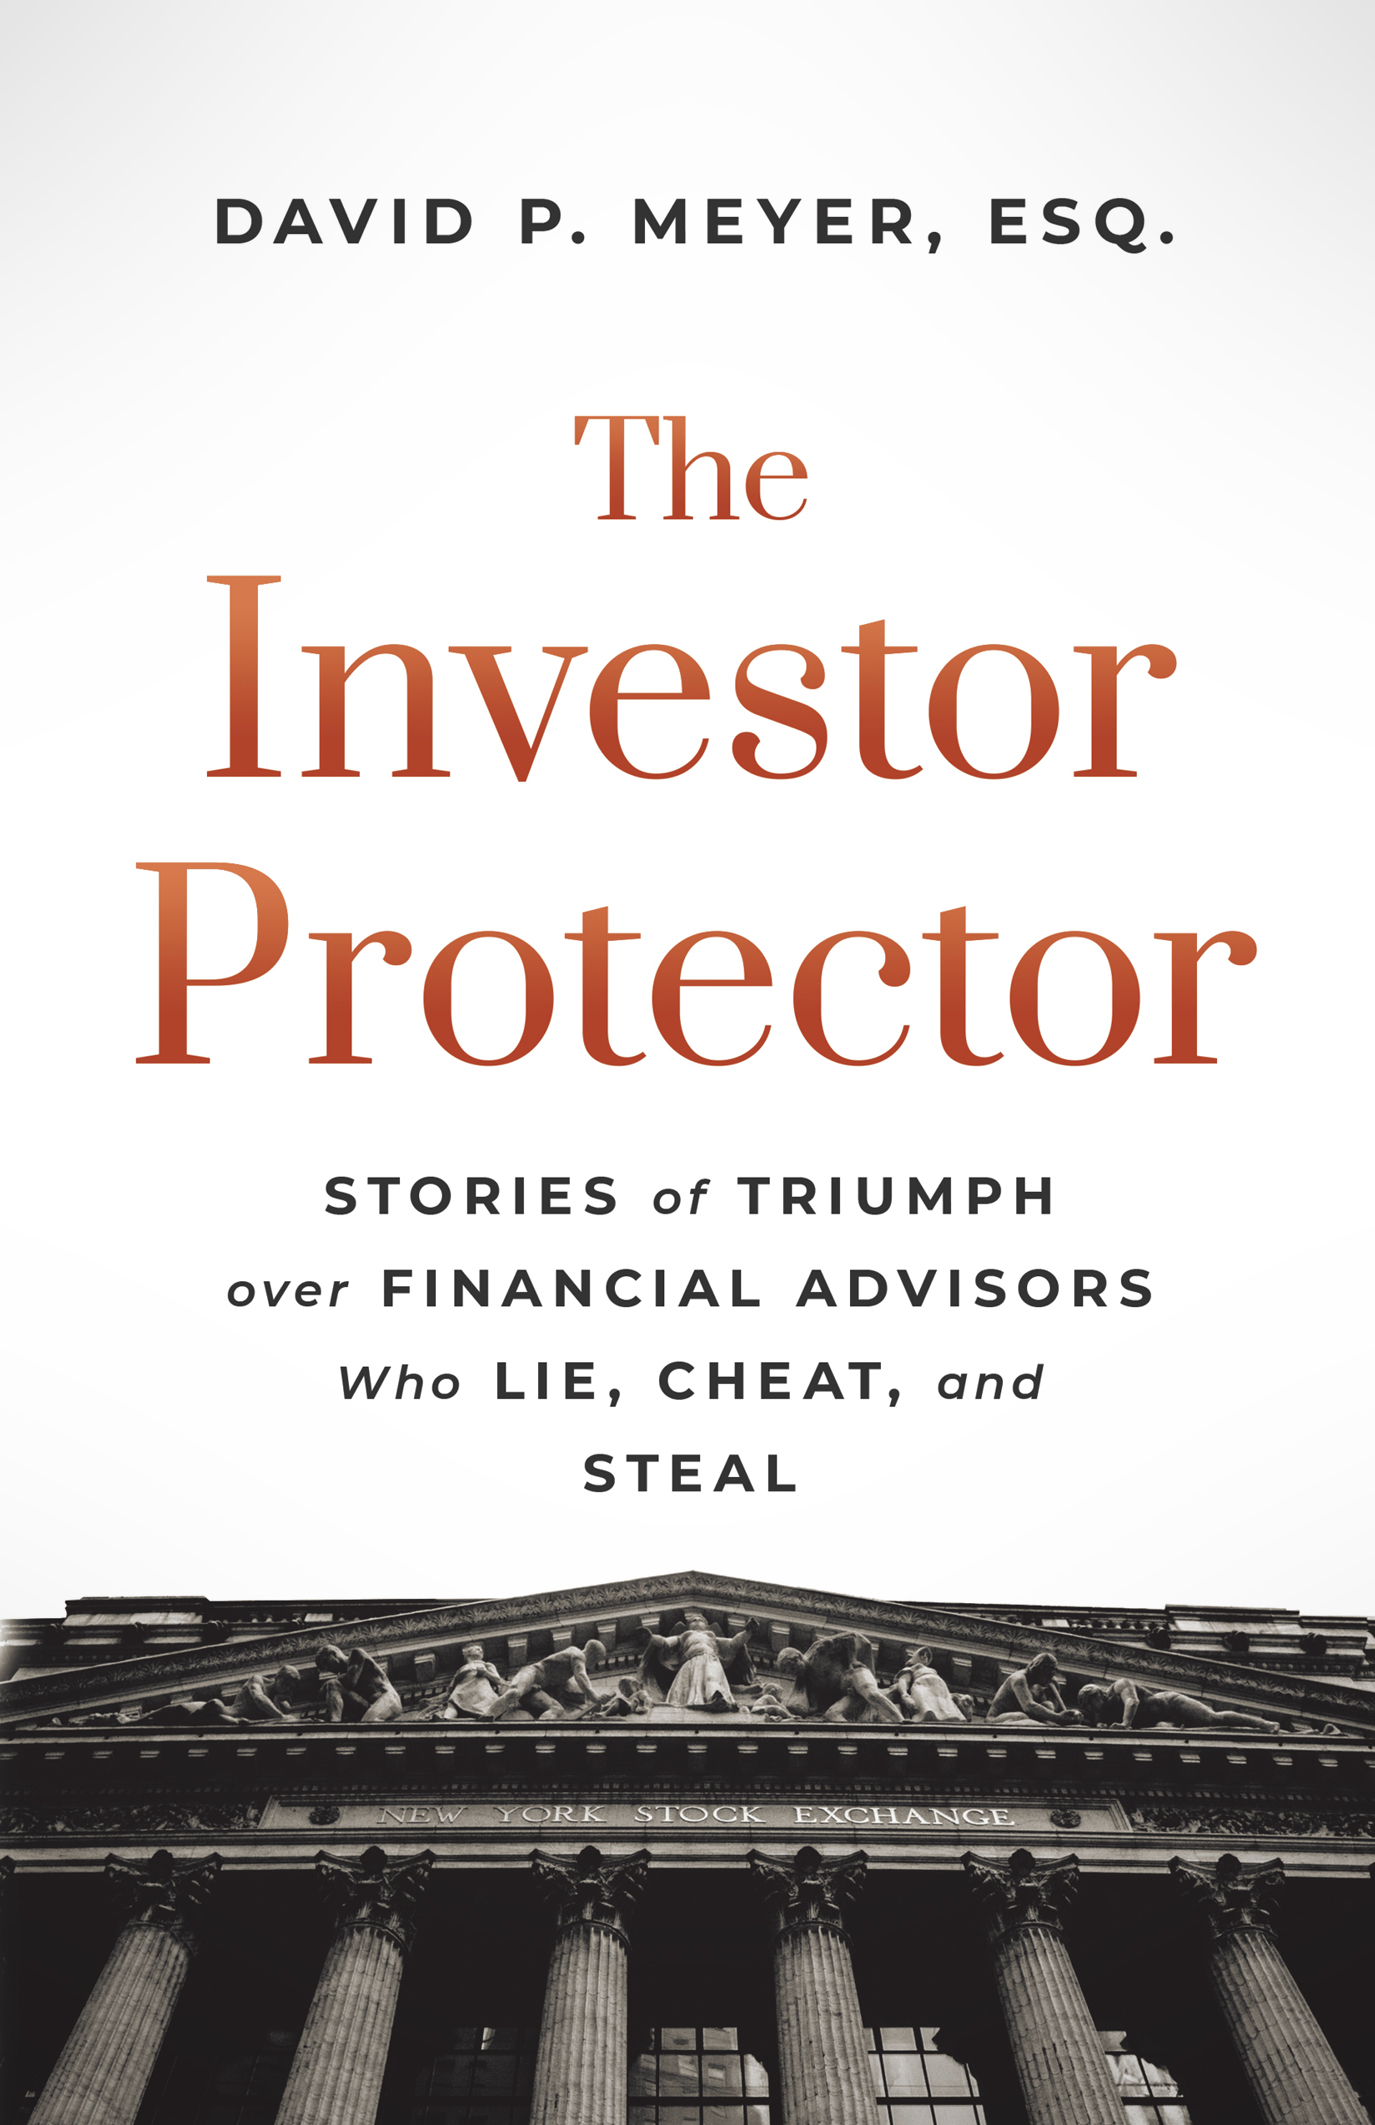 The Investor Protector: Stories of Triumph over Financial Advisors Who Lie, Cheat, and Steal